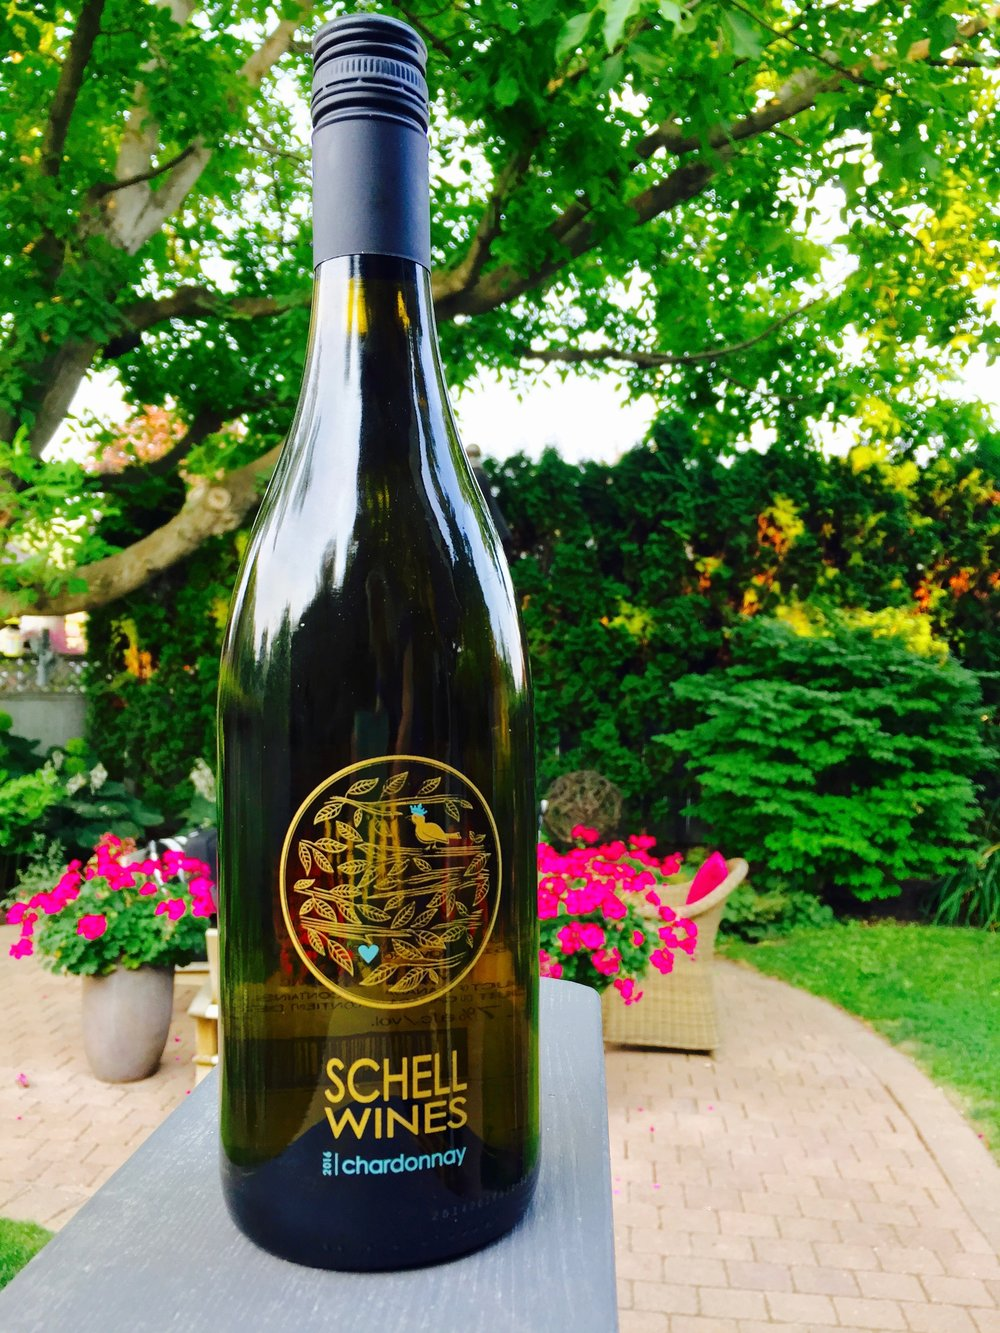 OUR FIRST VINTAGE OF SCHELL CHARDONNAY